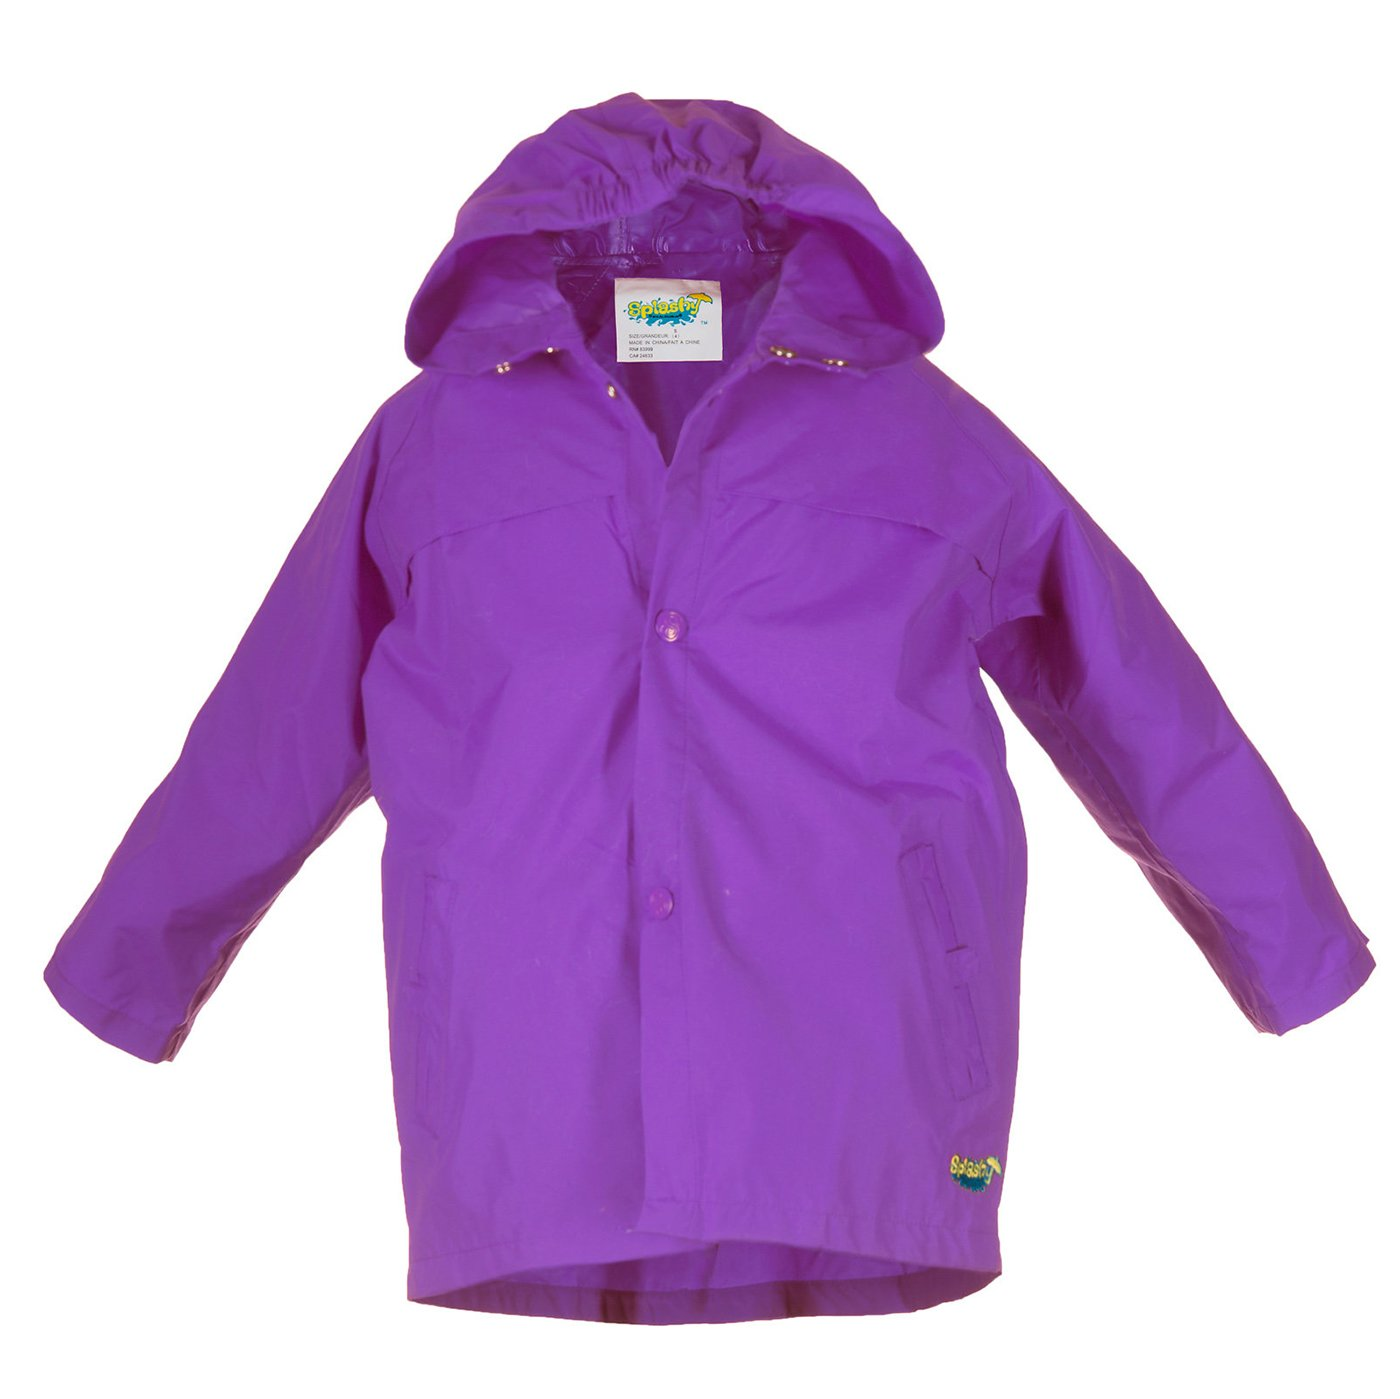 Splashy Children's Rain Jacket (11/12, Purple)